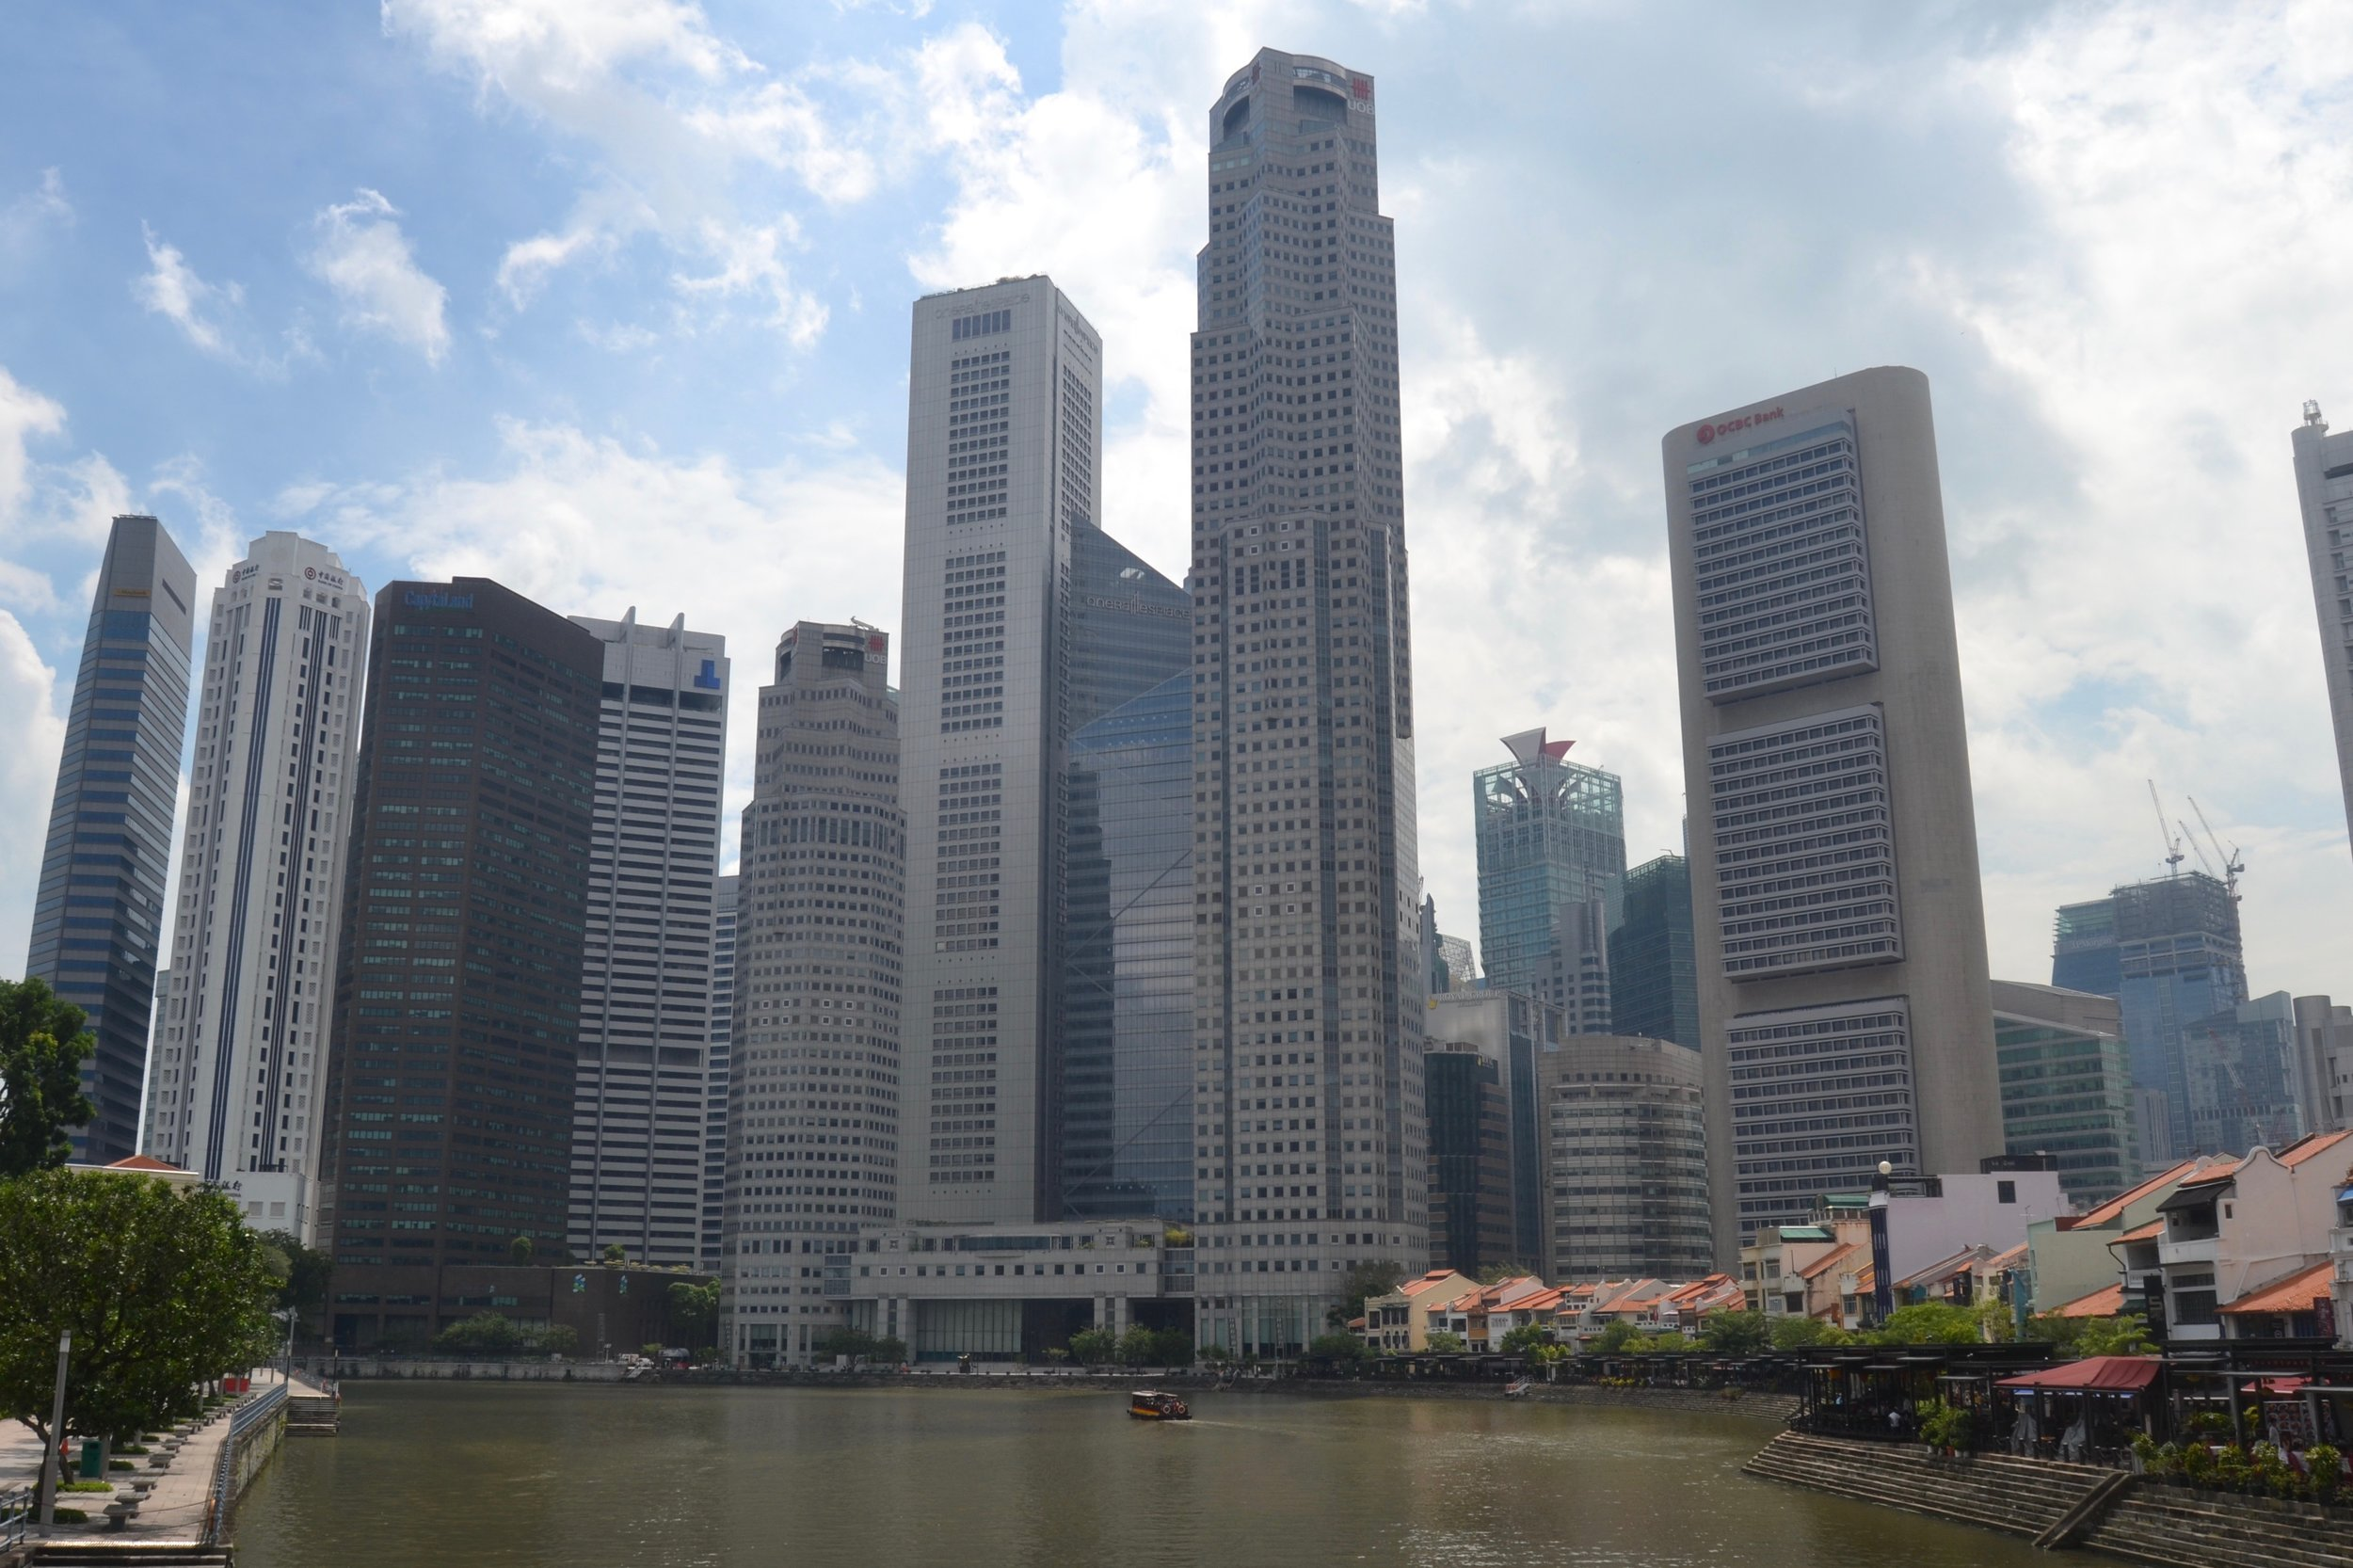 Downtown Singapore from the River